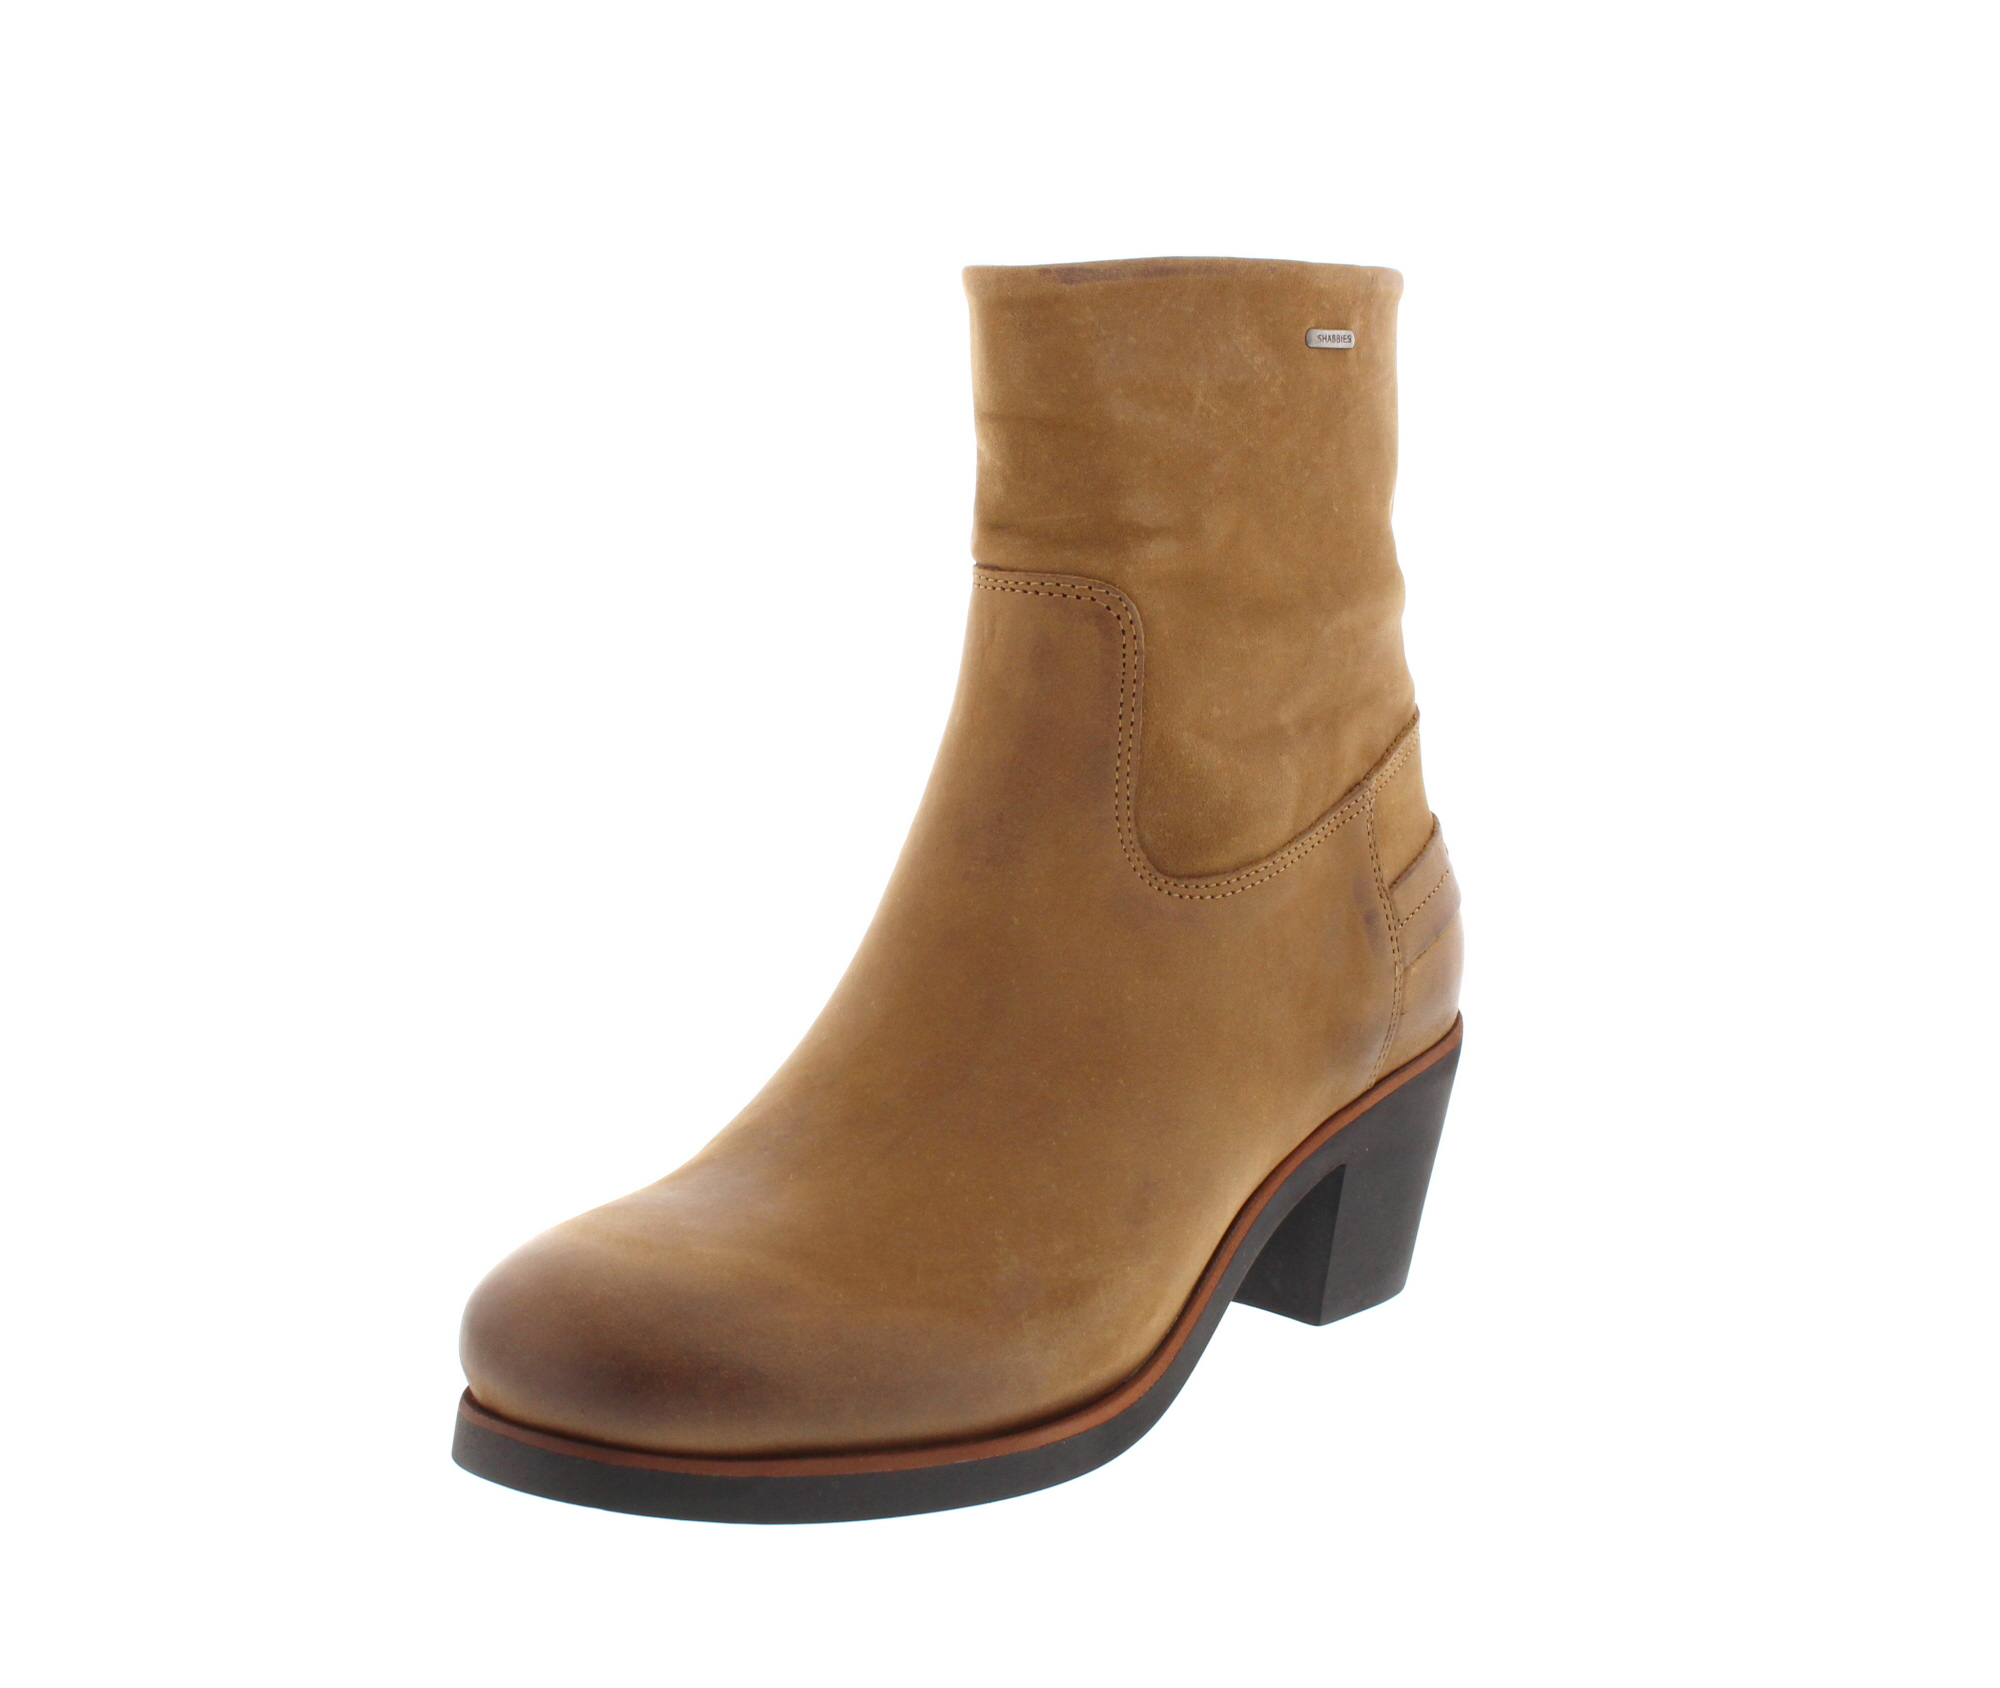 SHABBIES AMSTERDAM Stiefeletten 182020047 - brown_0